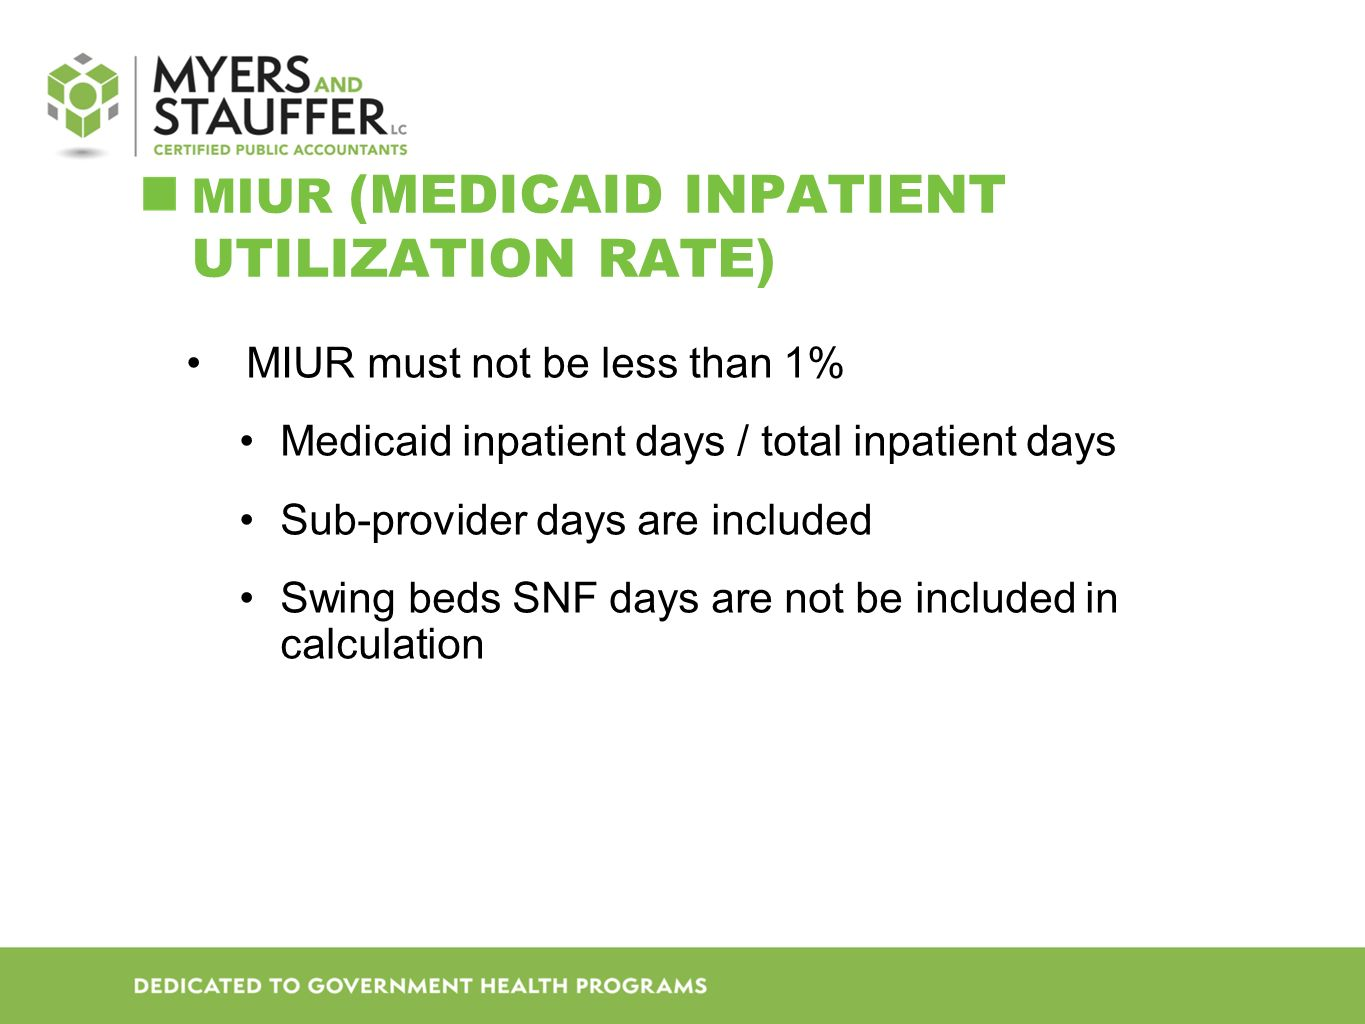 MIUR (MEDICAID INPATIENT UTILIZATION RATE) MIUR must not be less than 1% Medicaid inpatient days / total inpatient days Sub-provider days are included Swing beds SNF days are not be included in calculation